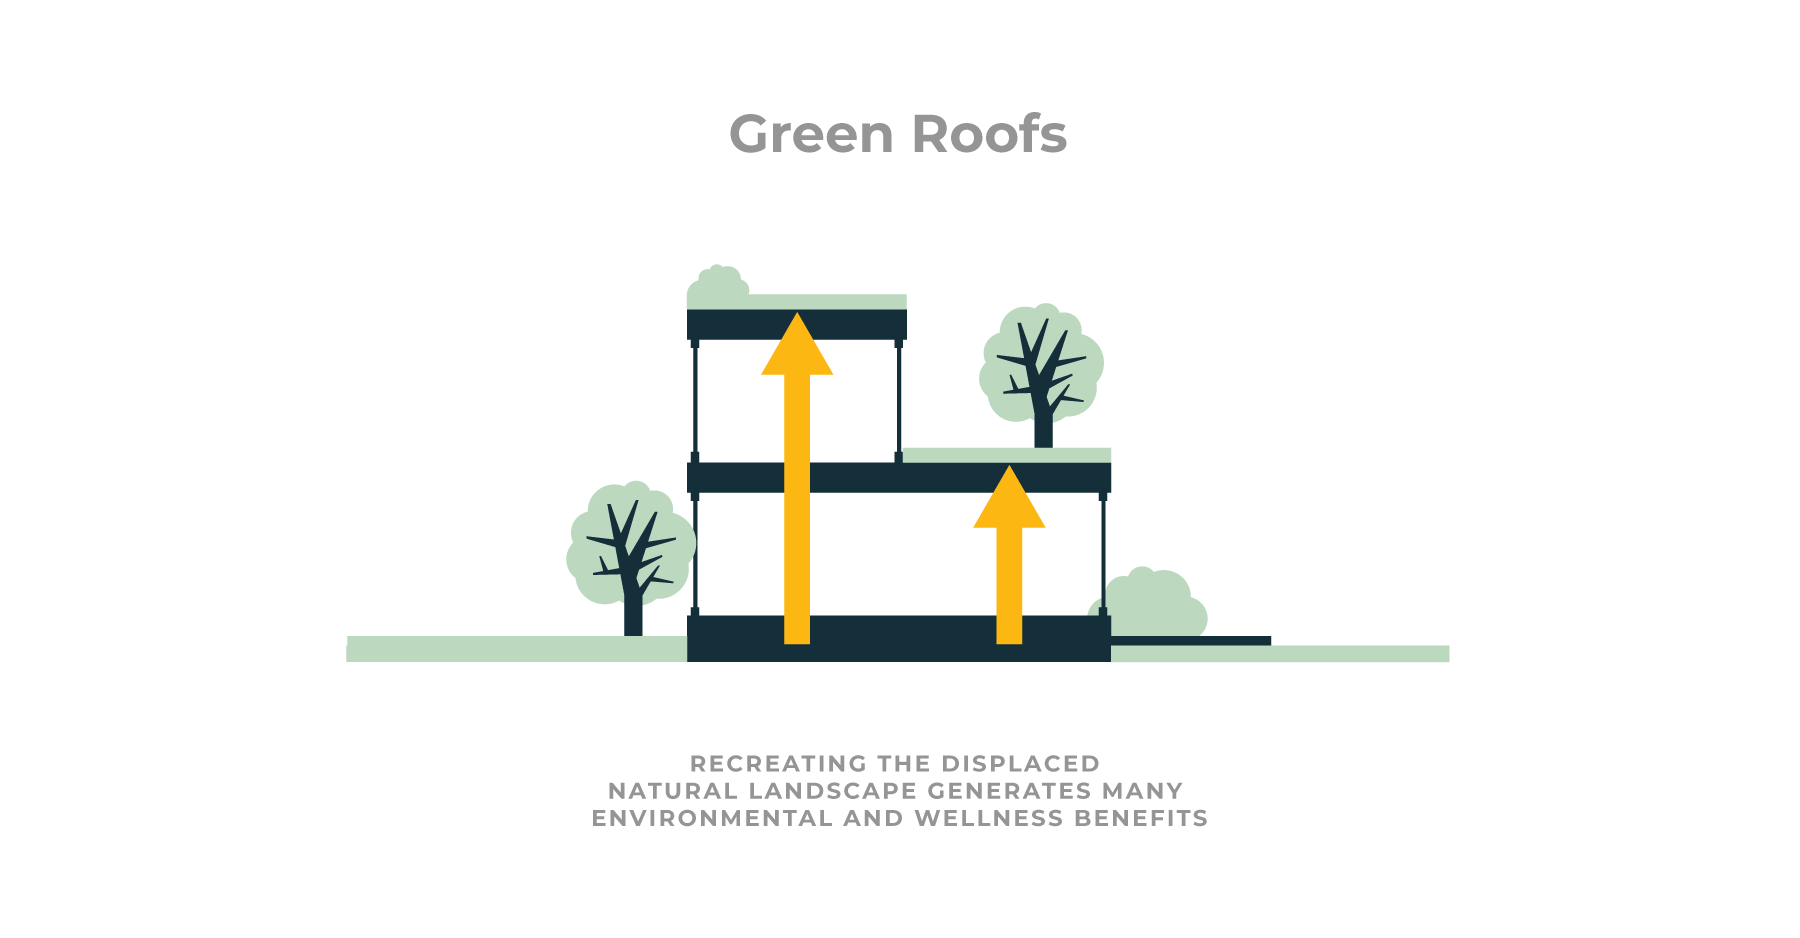 Sustainability benefits and costs of green roofs in modular home construction